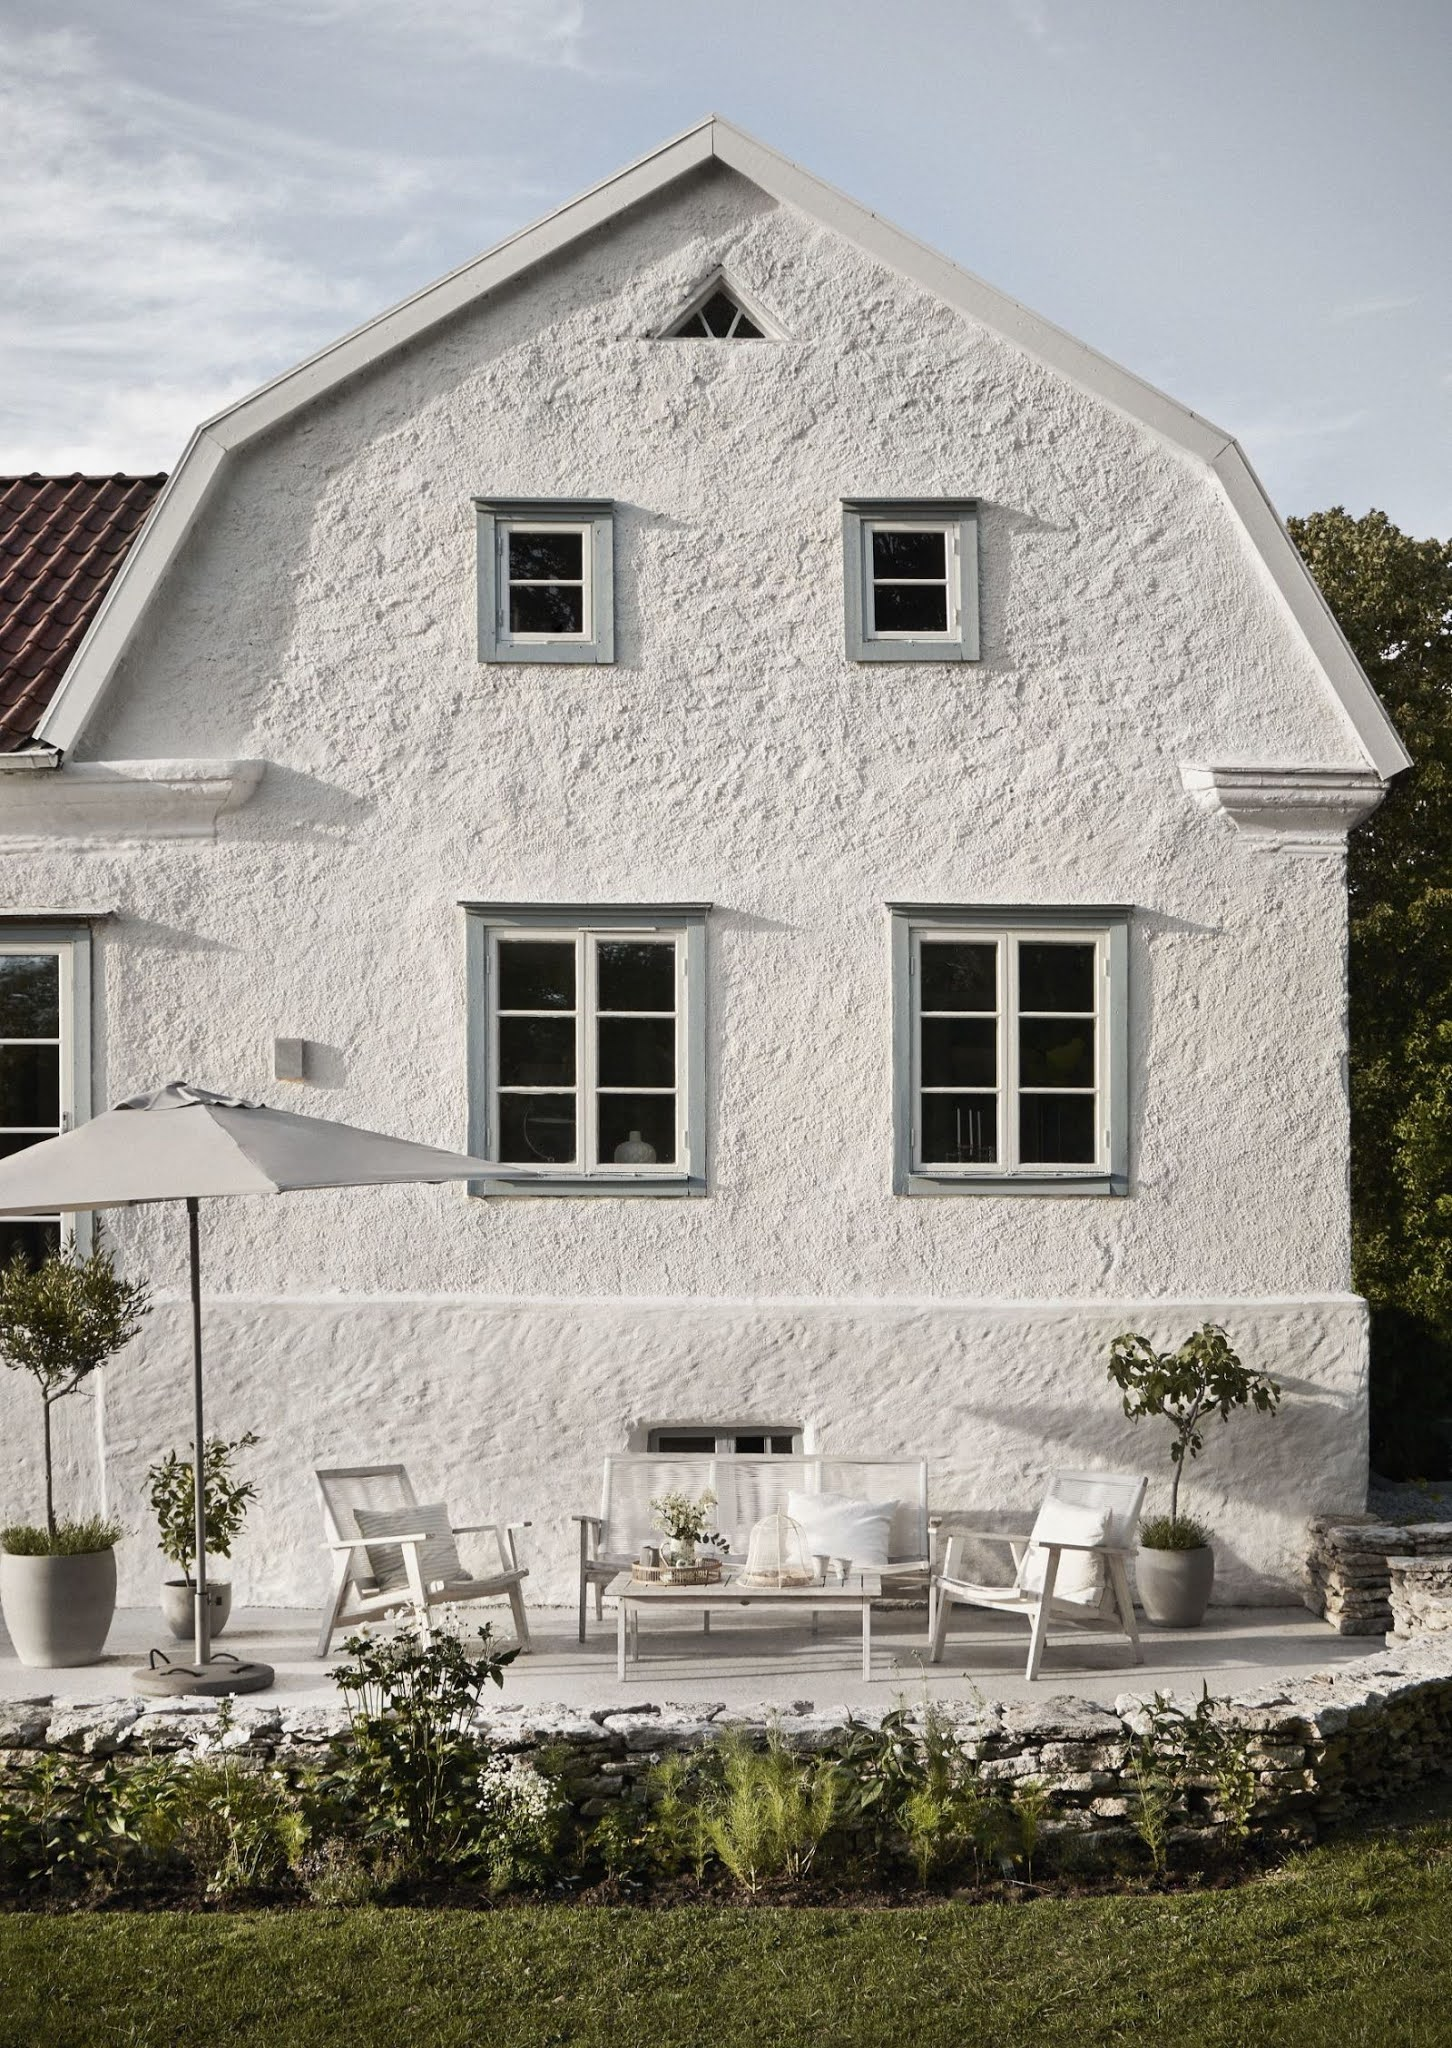 A 19th Century House Ready for Summer,  On The Swedish Island of Gotland